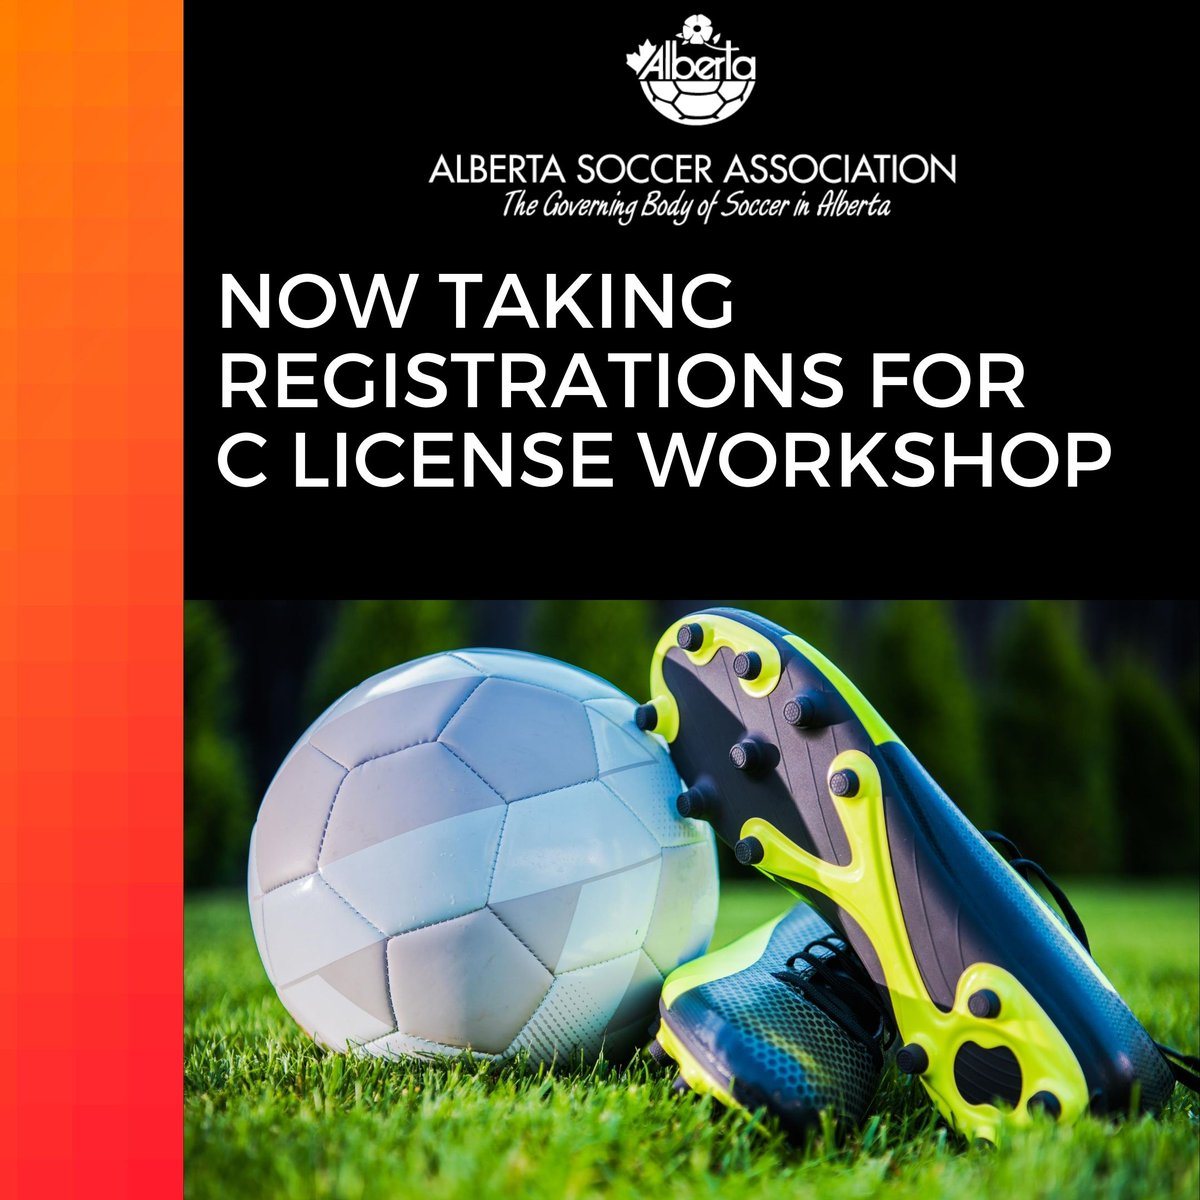 Excited to announce that Registration is now open for our Online C License Workshop.  To find out more about the C license program & to register go to our website at https://t.co/wYCOGvdsyq https://t.co/baOnHGSmA9